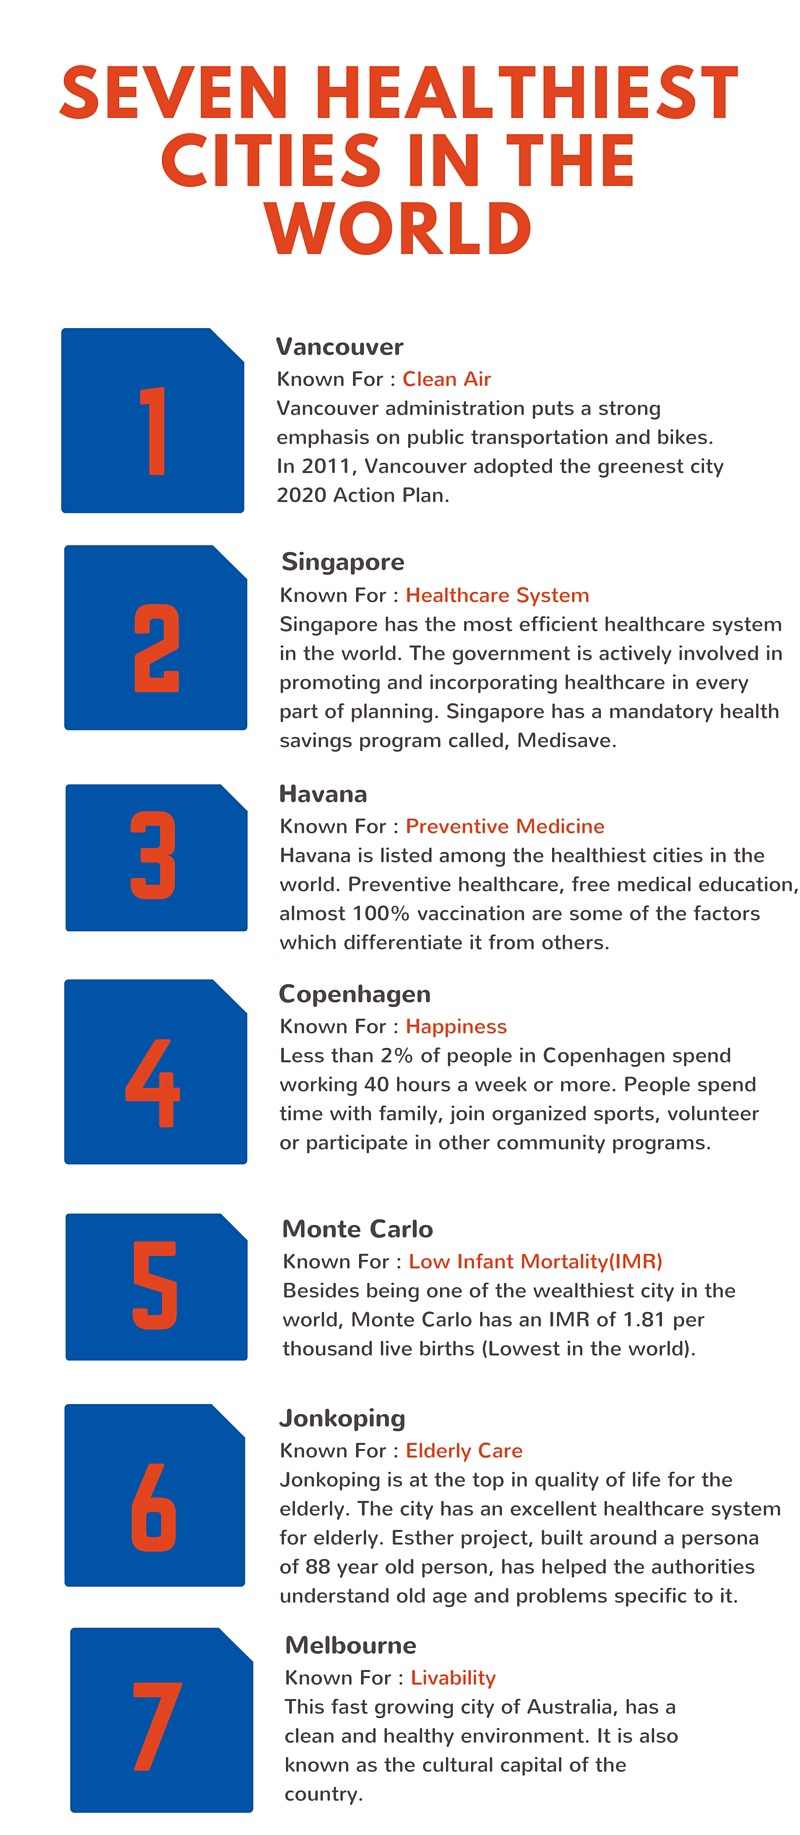 Healthiest Cities in the World